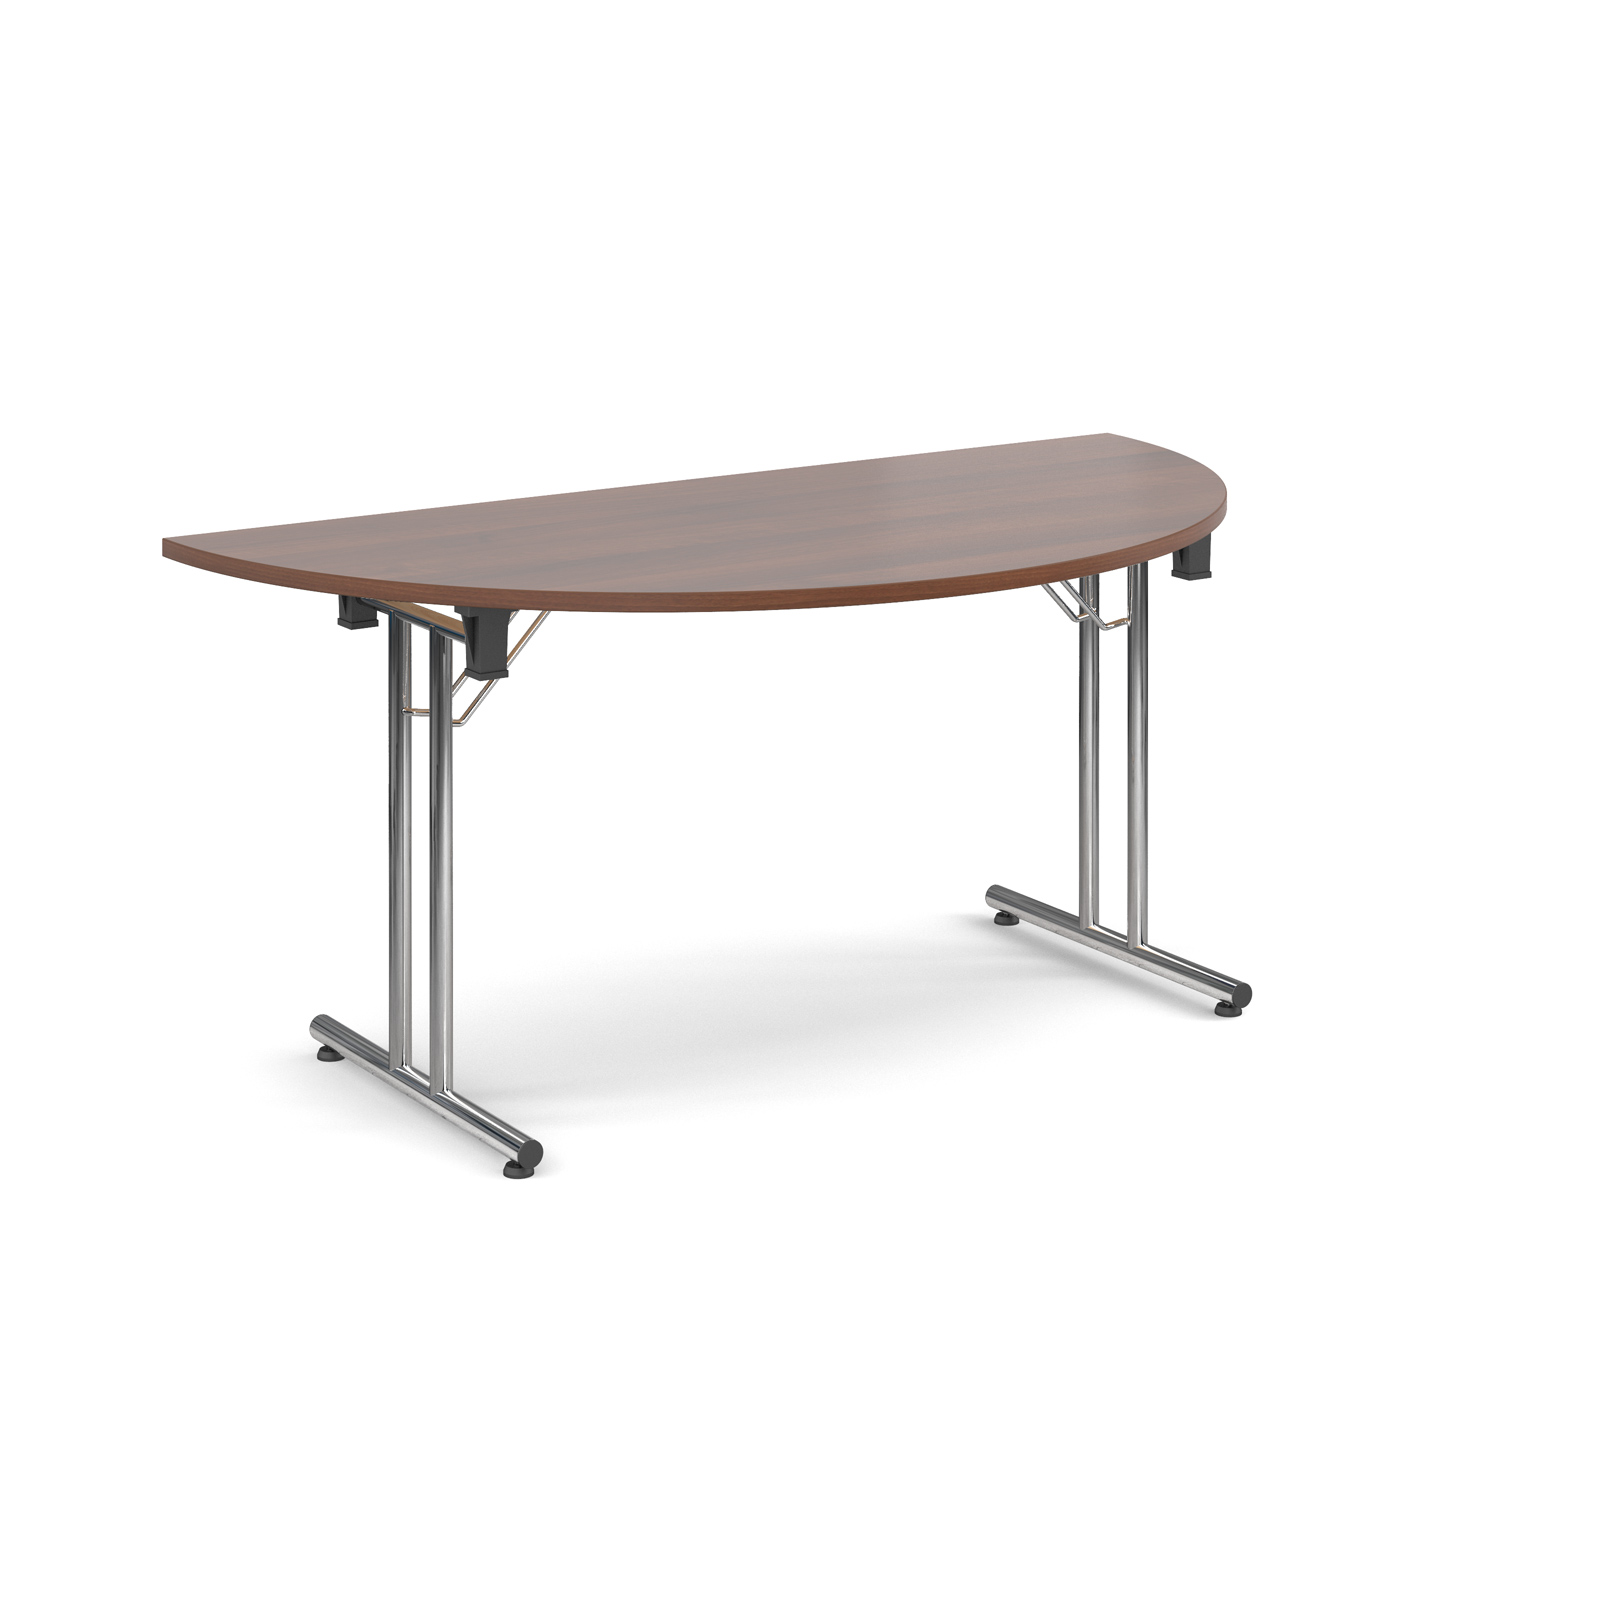 Semi circular deluxe folding leg table 1600mm x 800mm - walnut